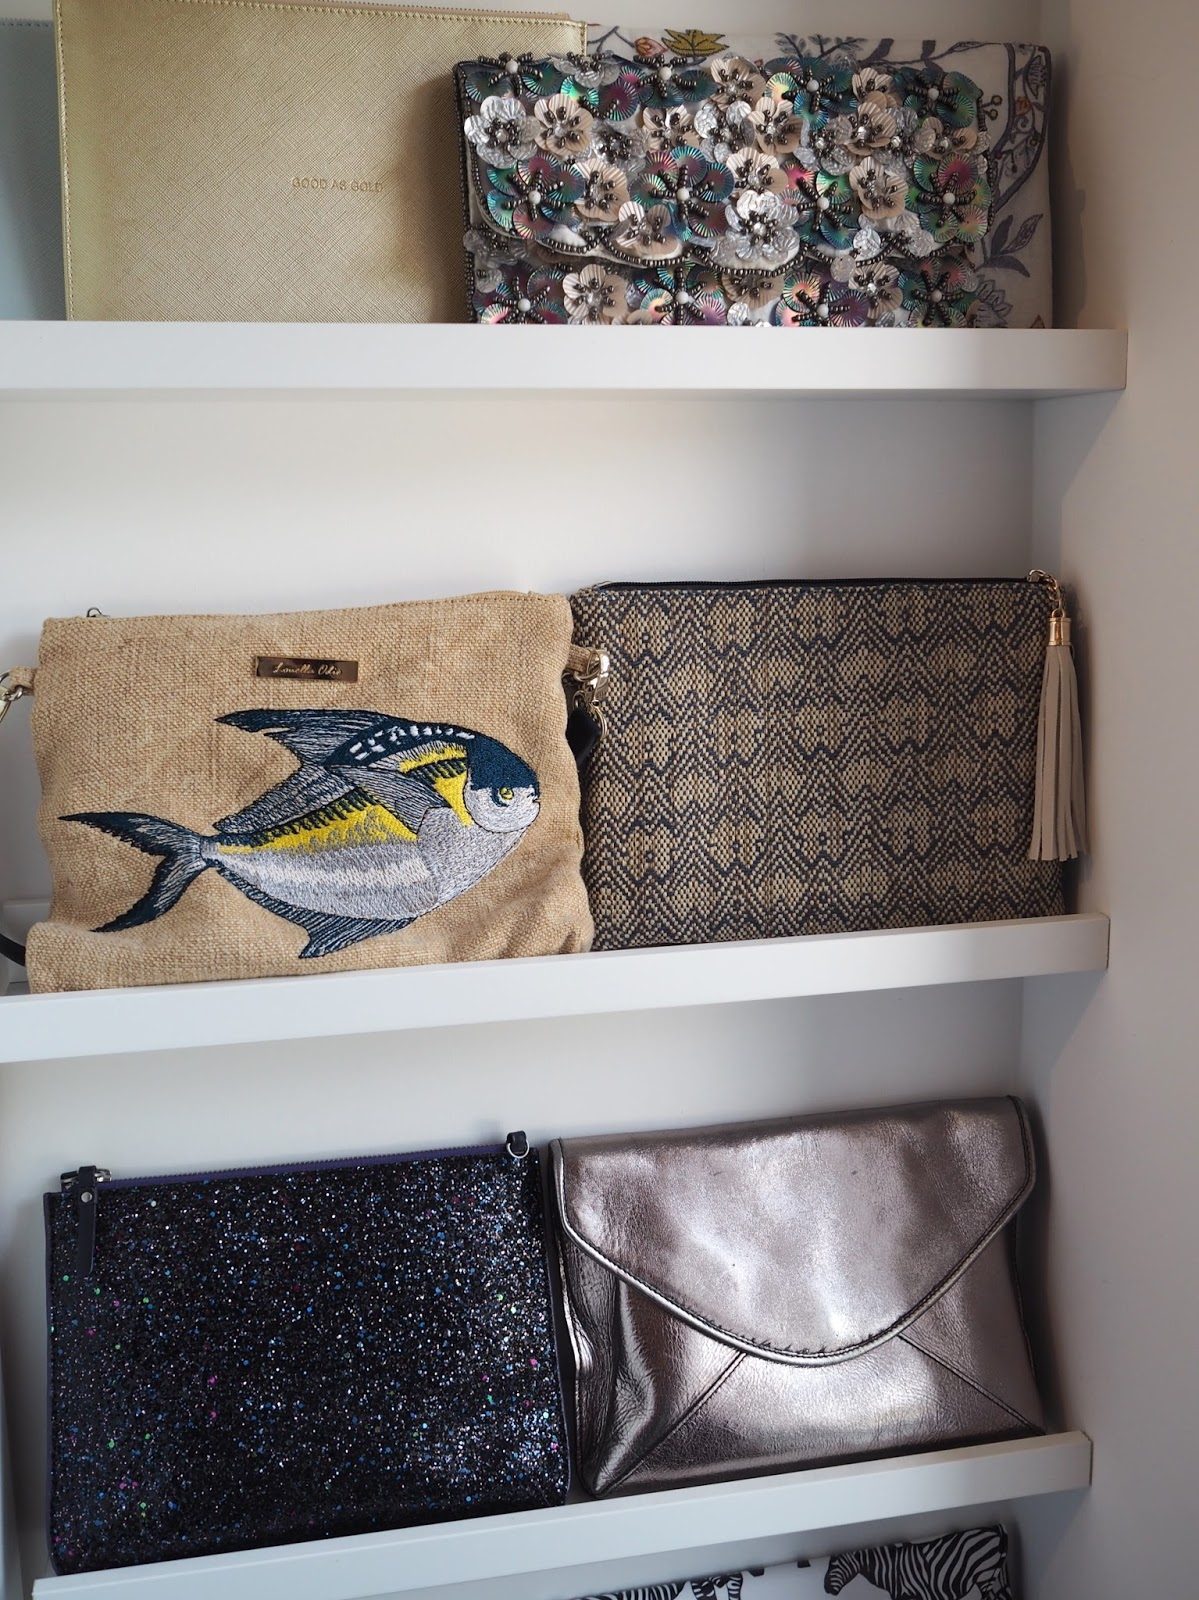 Ikea picture ledges for storing clutch bags